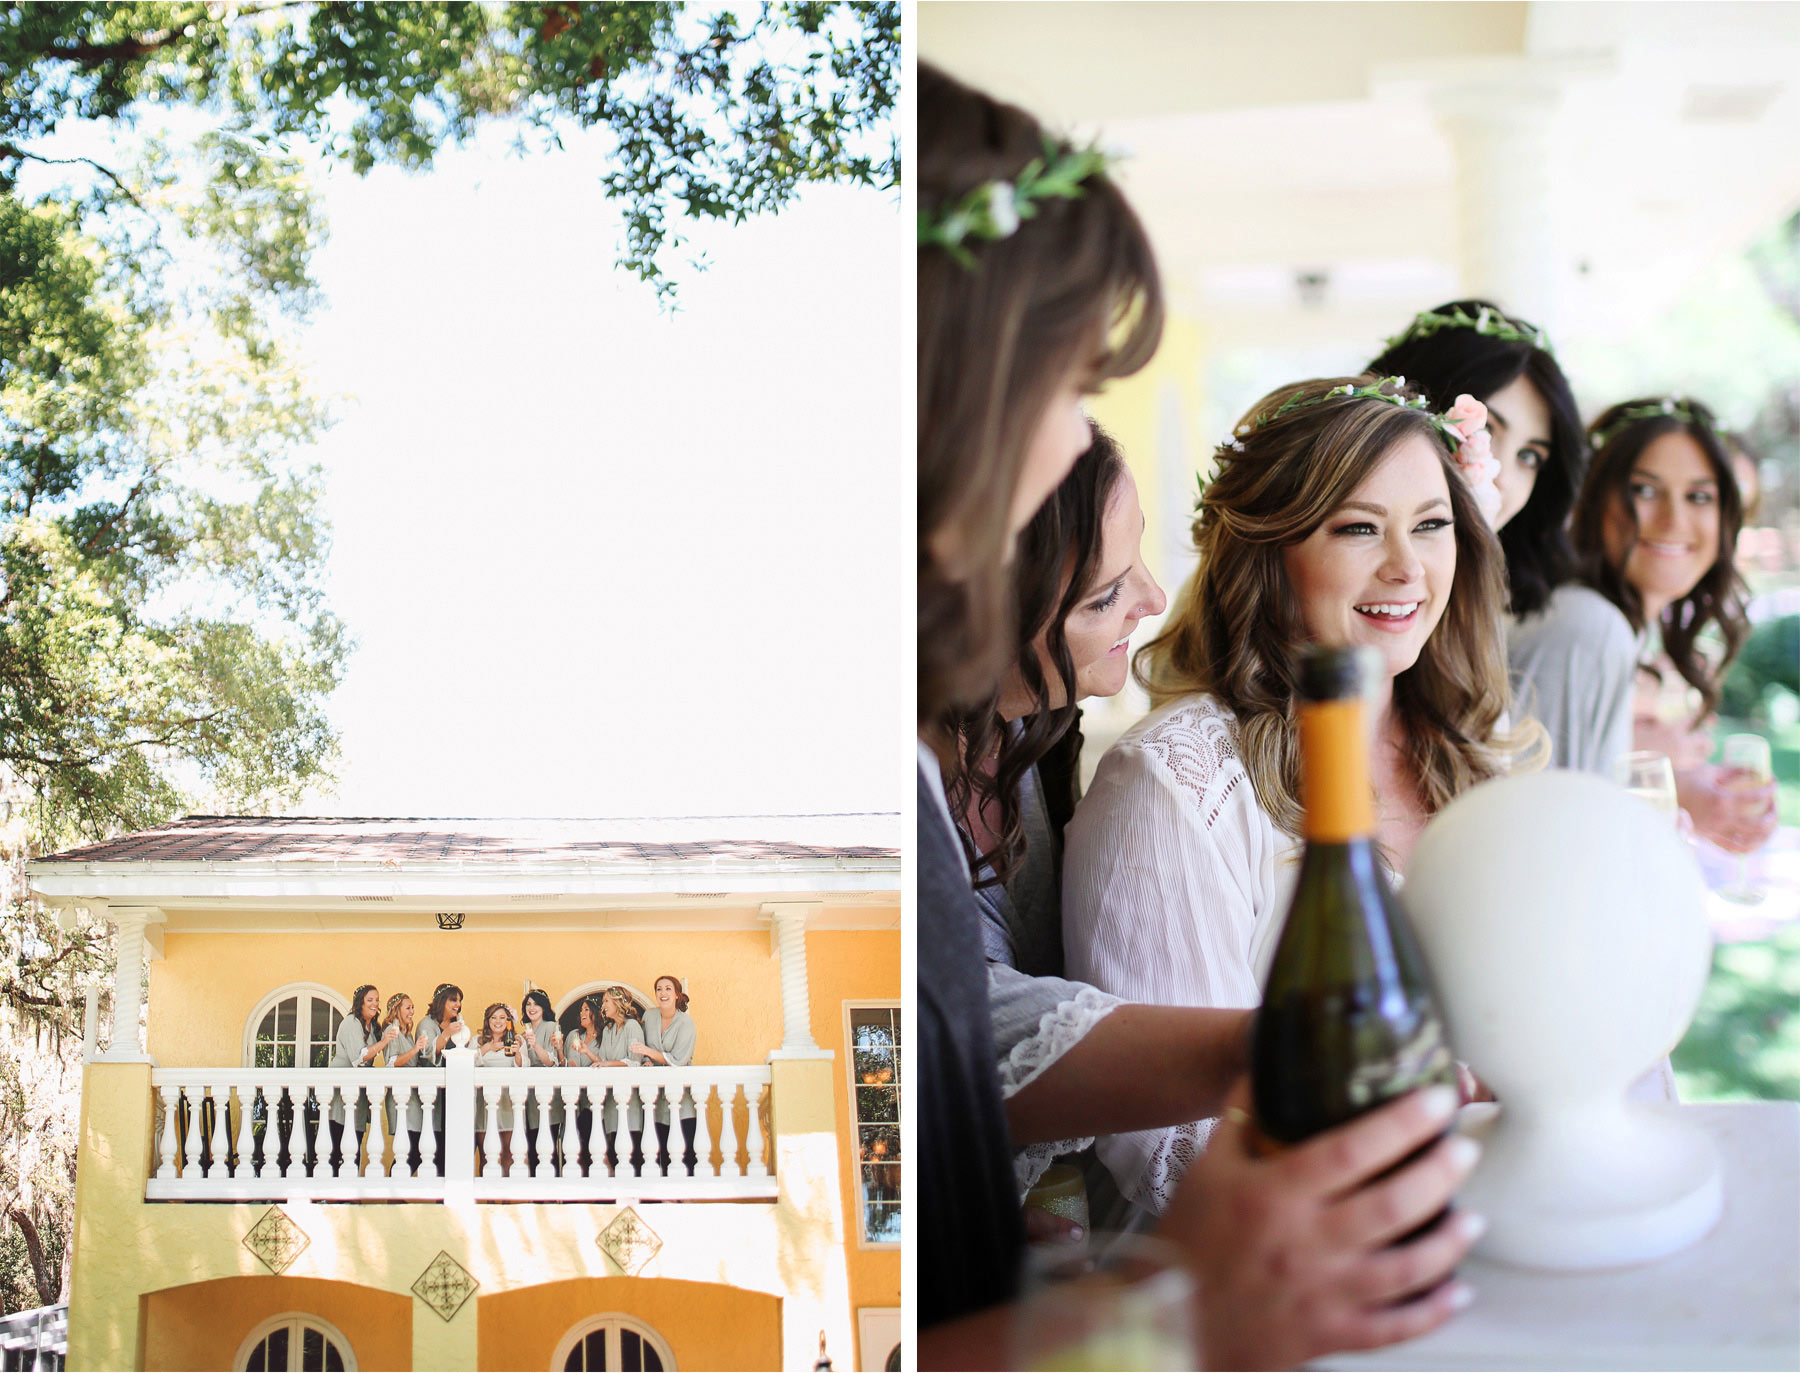 03-Brandon-Florida-Wedding-Photographer-by-Andrew-Vick-Photography-Casa-Lantana-Spring-Getting-Ready-Bride-Bridesmaids-Champage-Flower-Crown-Balcony-Vintage-Kristianna-and-Ben.jpg